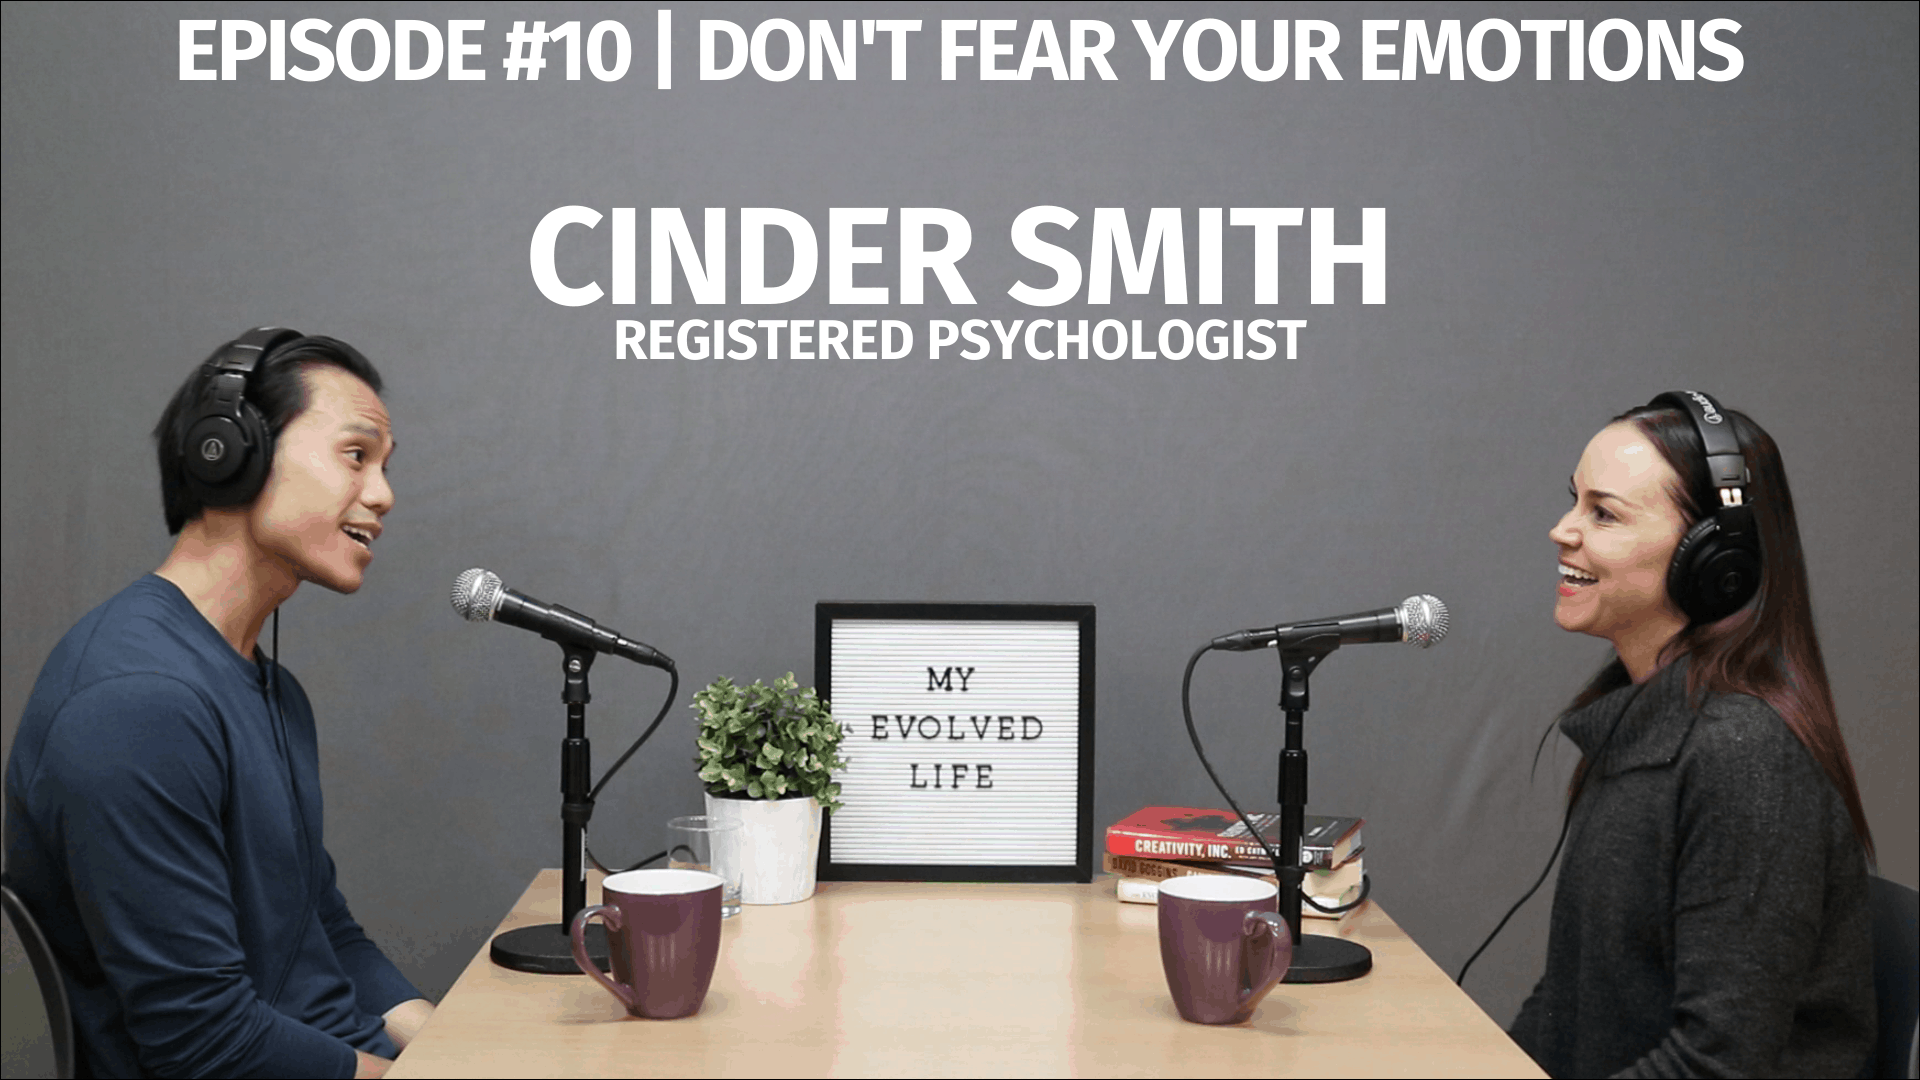 My Evolved Life Episode #10 - Cinder Smith - Don't Fear Your Emotions